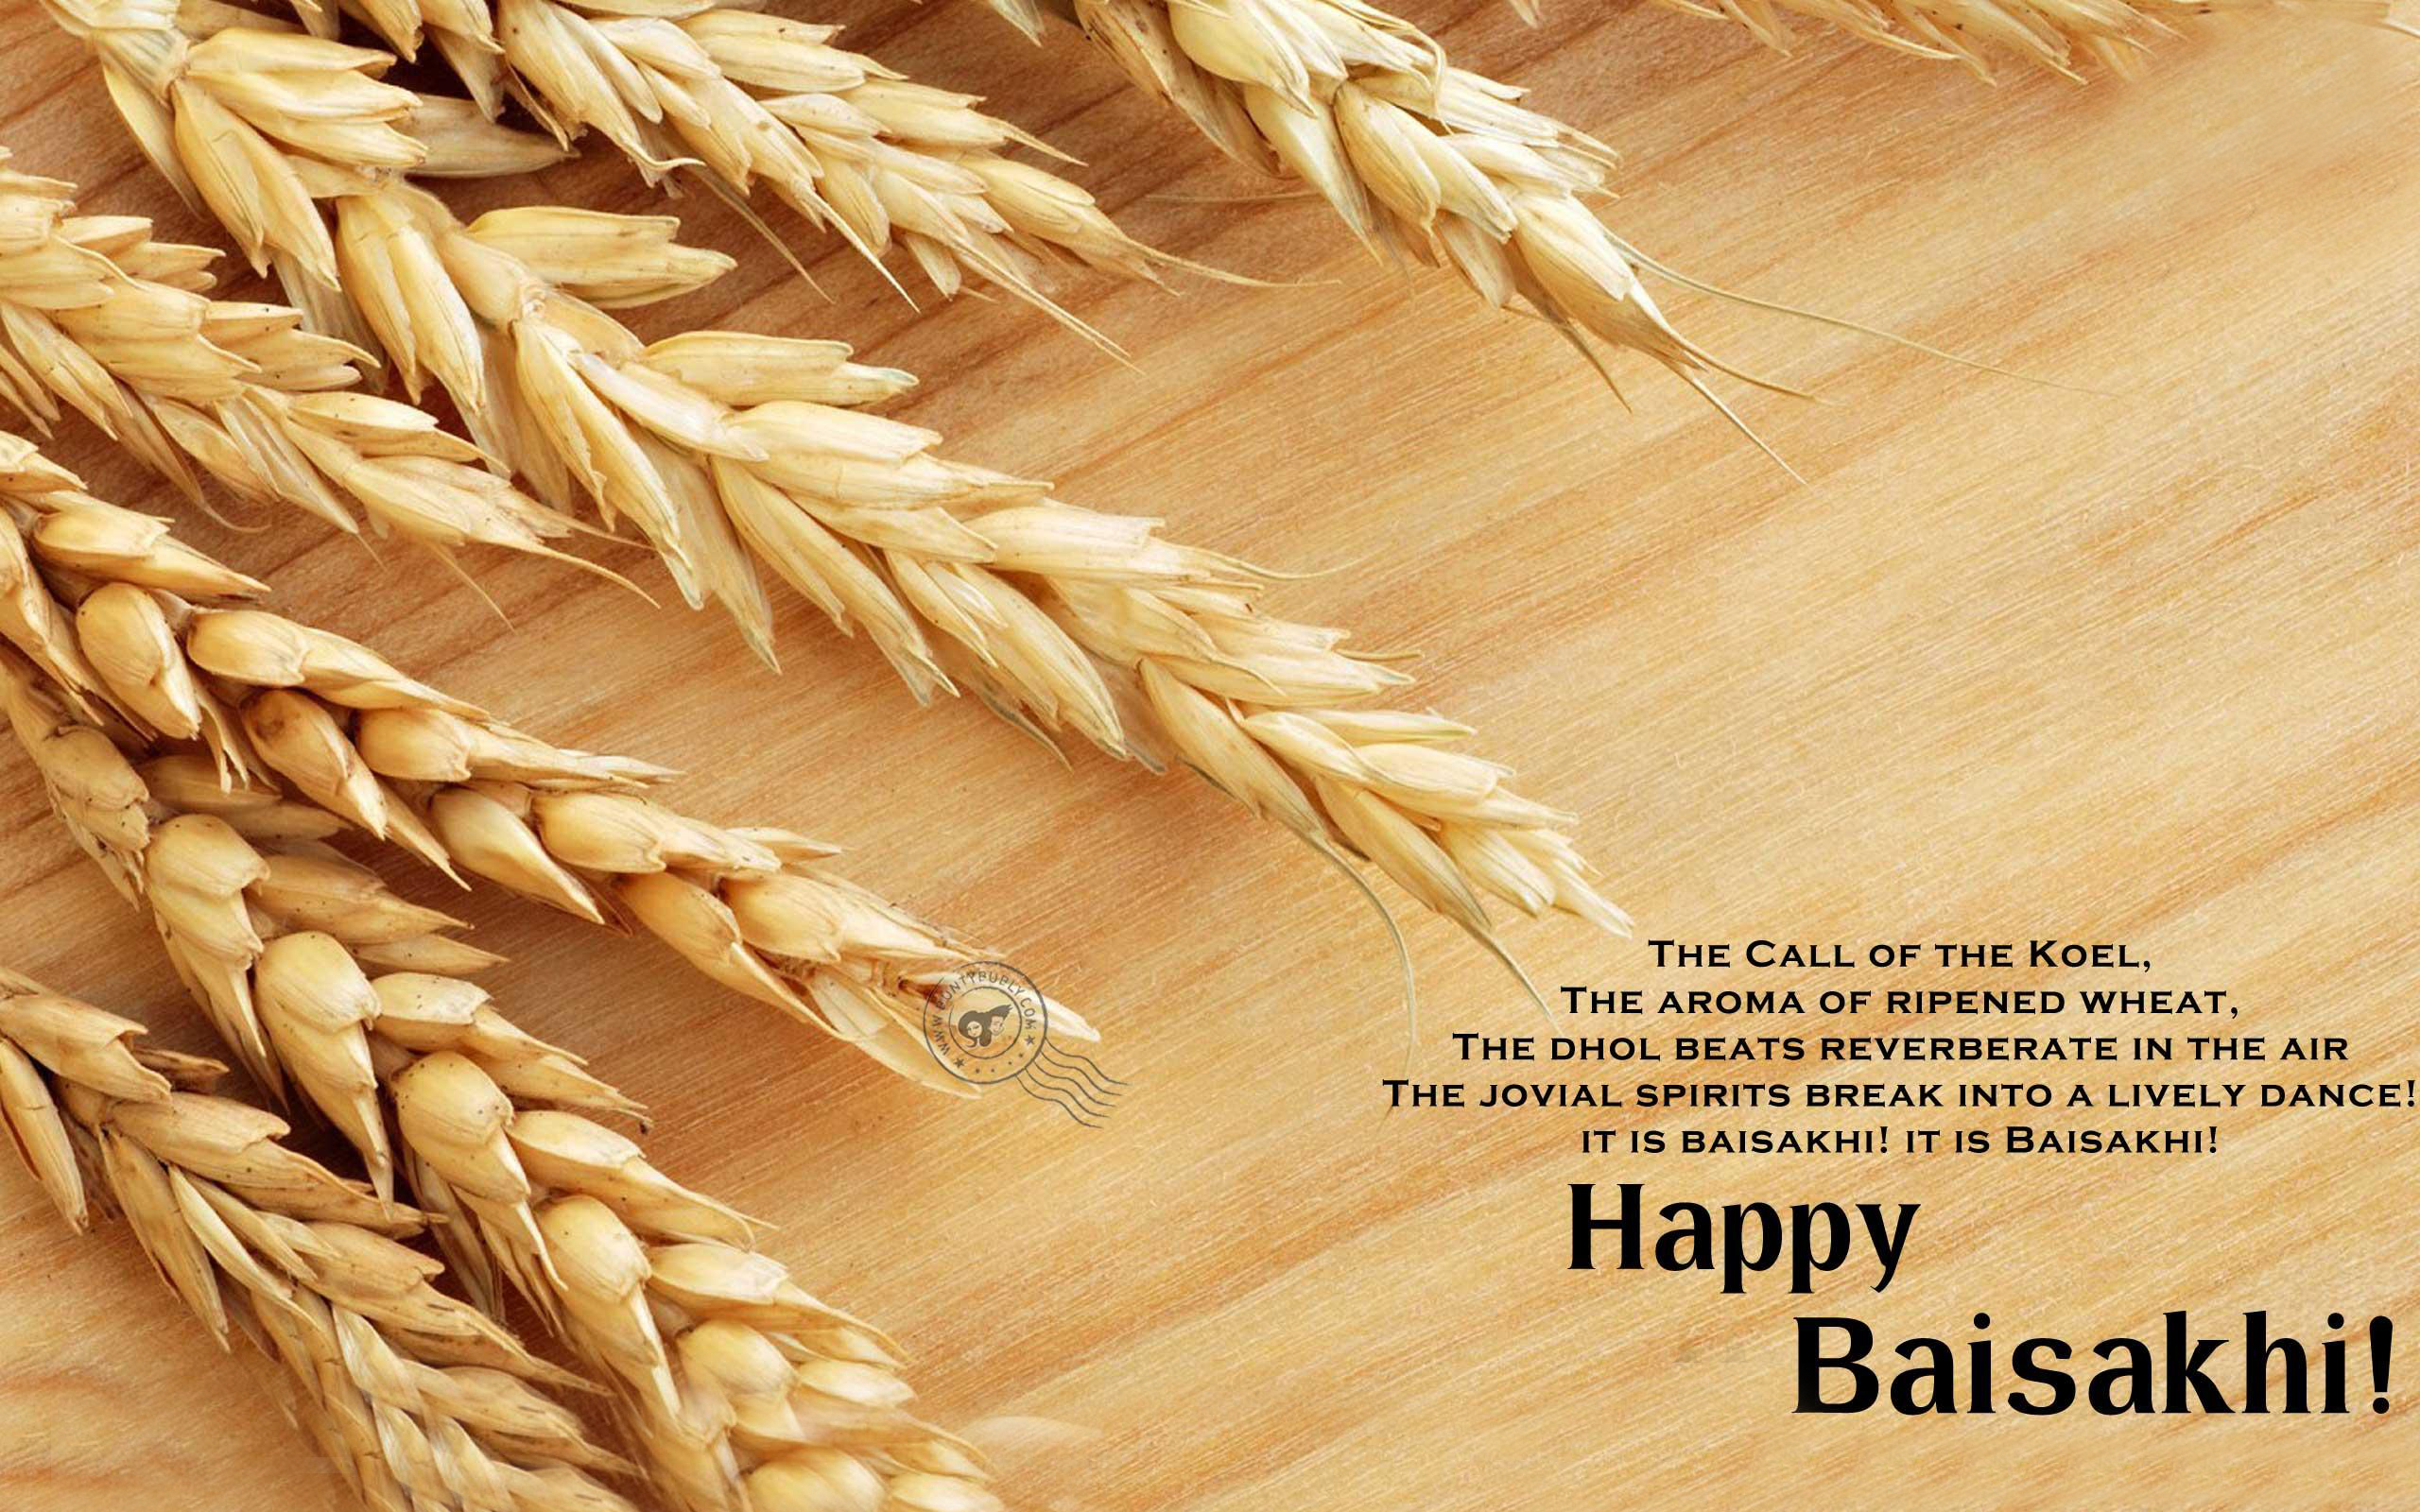 Happy Baisakhi 2017 Wallpaper free download